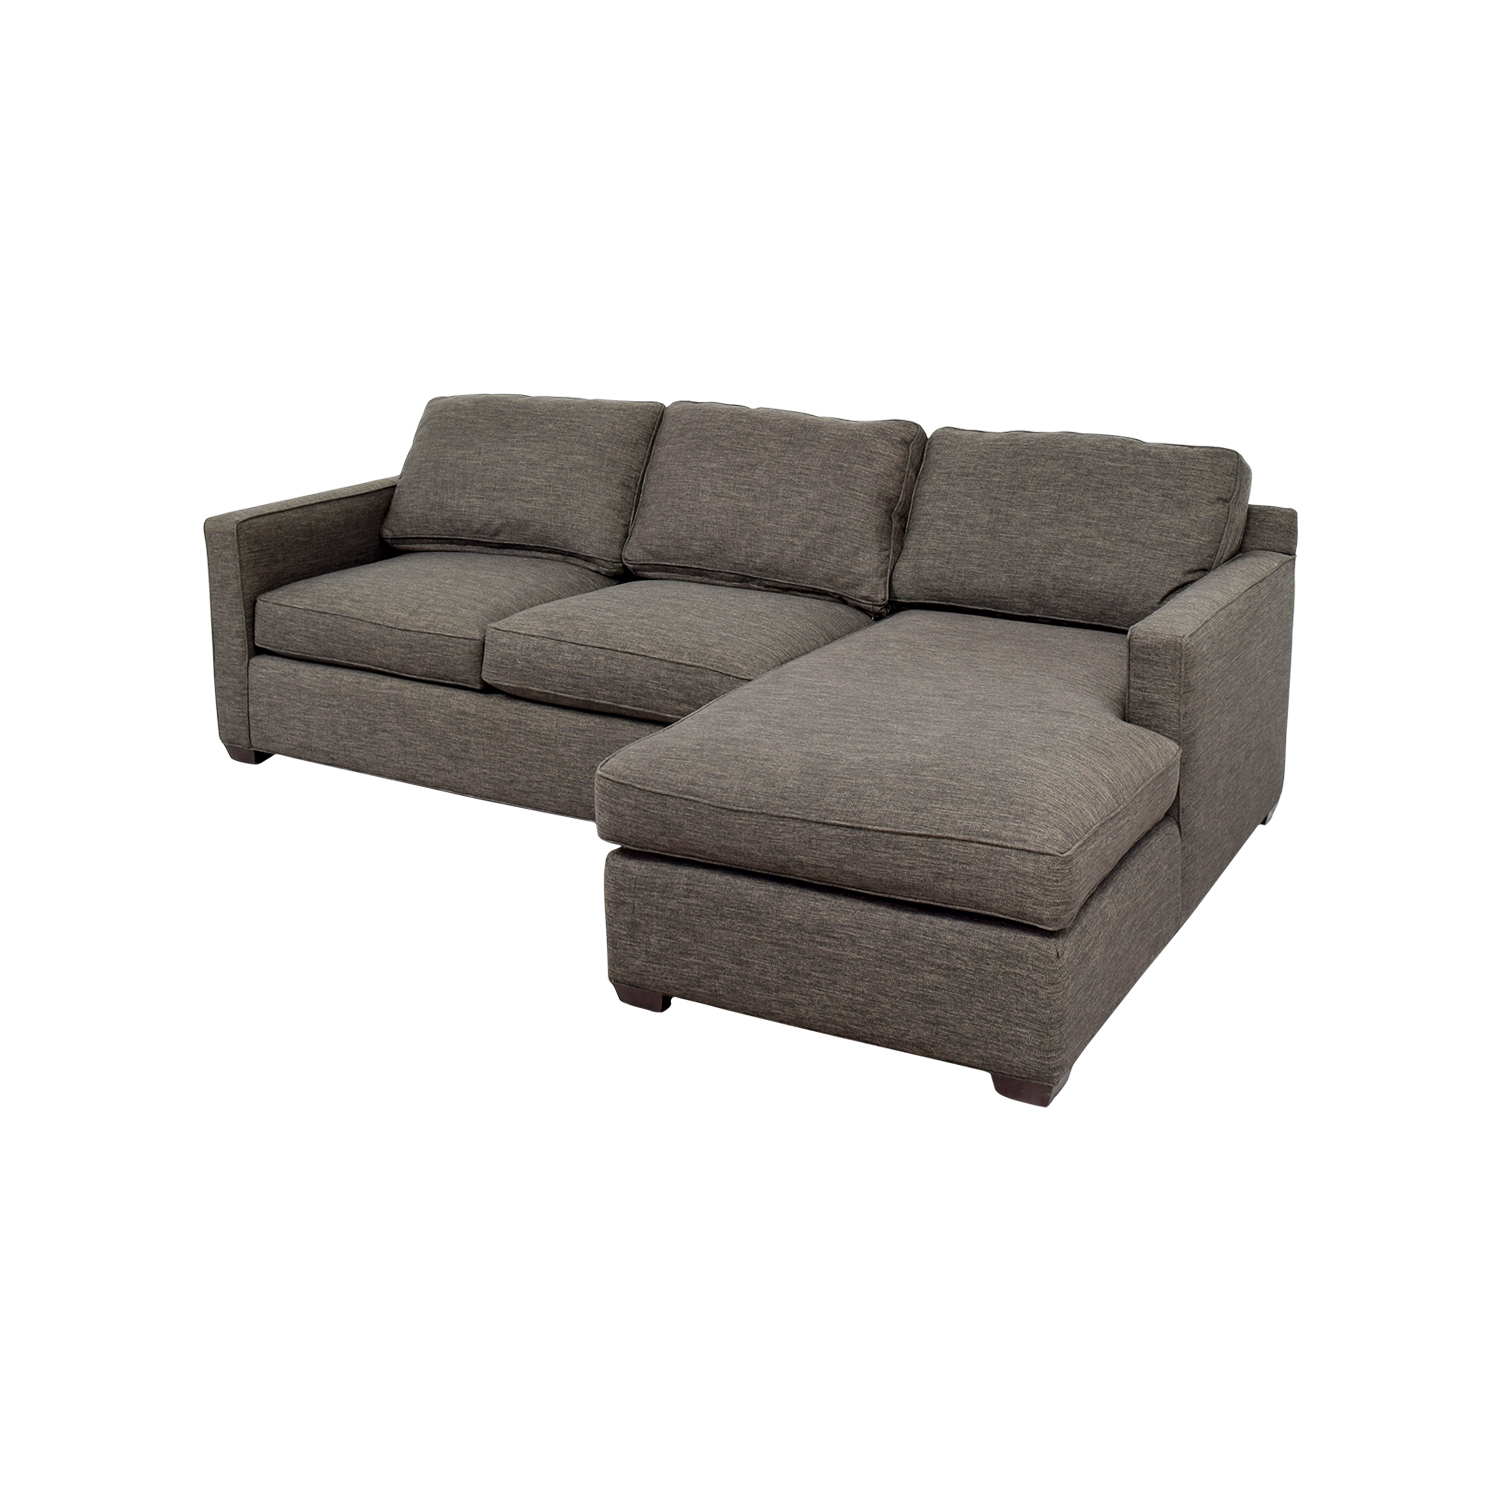 Incredible 63 Off Crate Barrel Crate Barrel Davis Grey Chaise Sectional Sofas Gmtry Best Dining Table And Chair Ideas Images Gmtryco